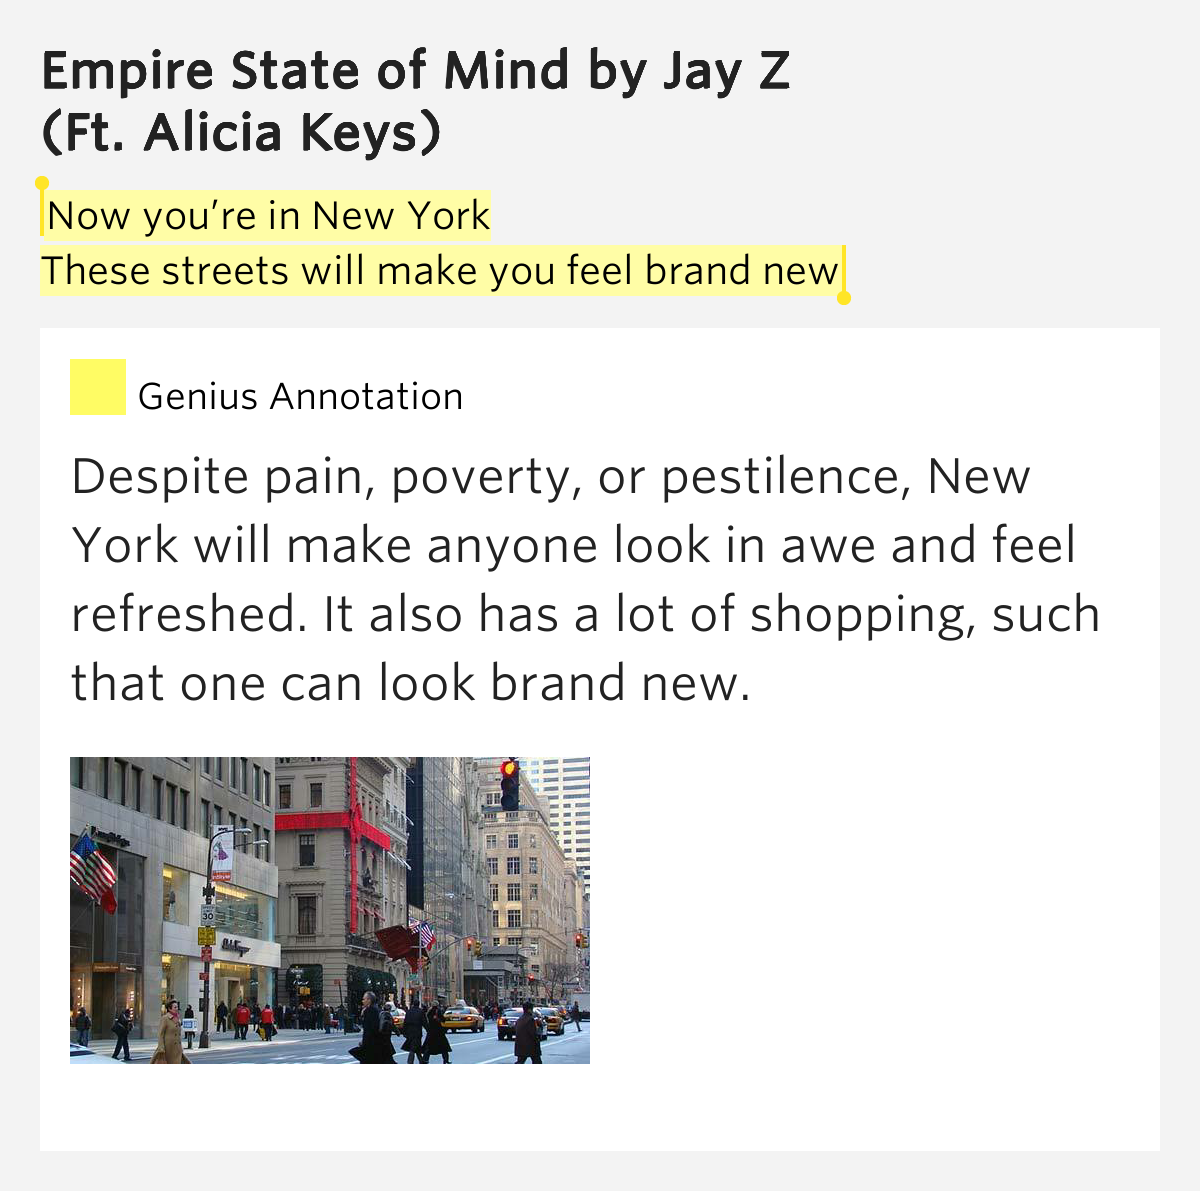 Empire State Of Mind Pt 2 Alicia Keys: Now You're In New York / These Streets..